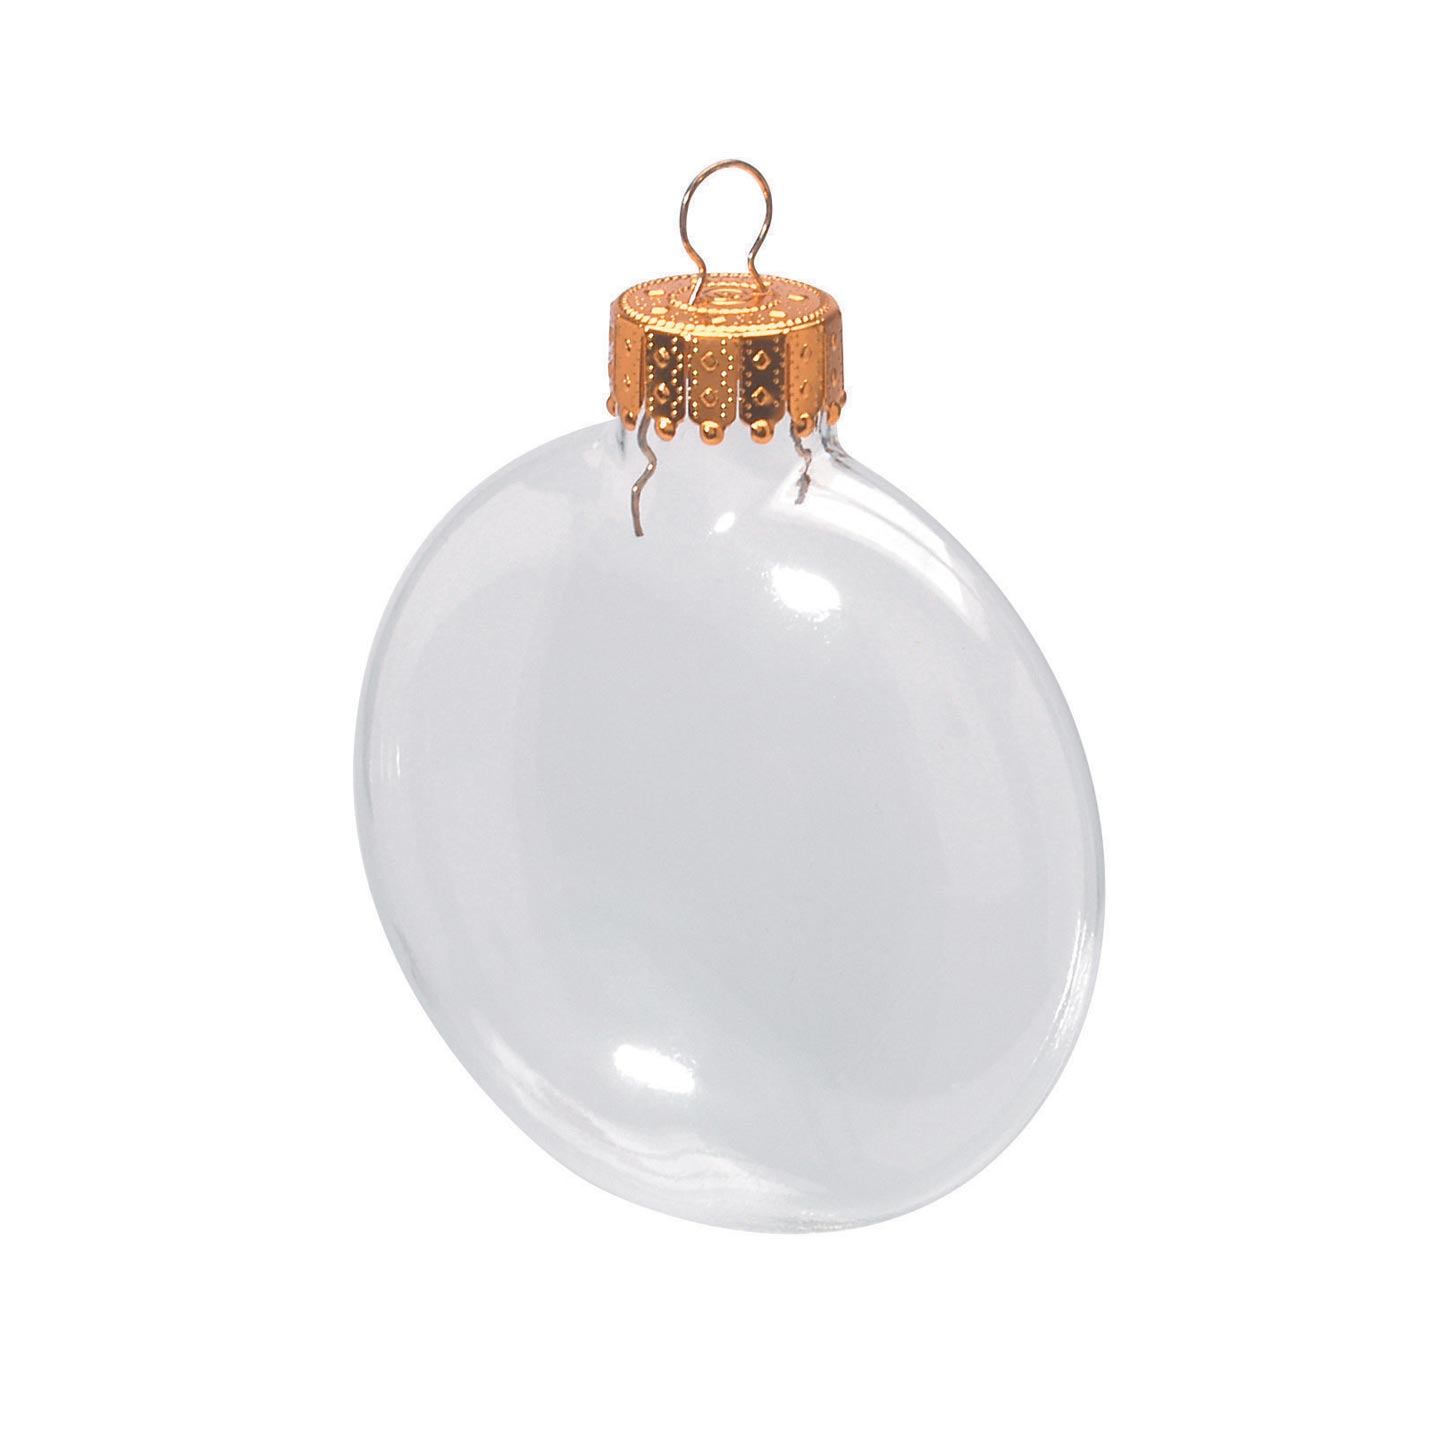 Darice Fillable Clear Glass Ornaments: 3.125-inch Discs, 6 pack